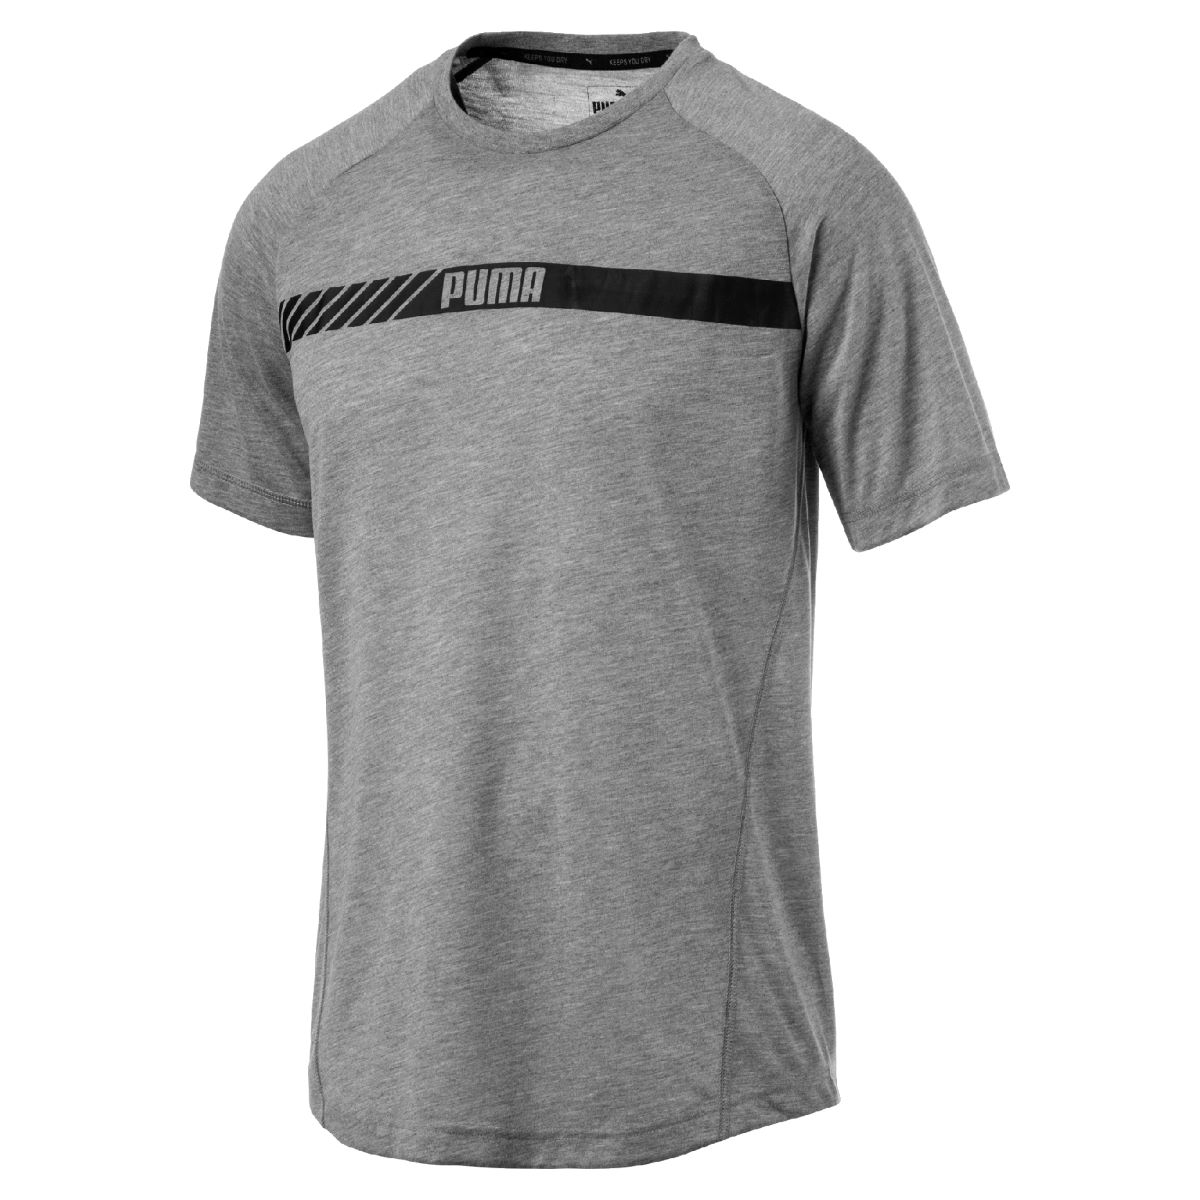 Puma Active Tec Gym Tee - XXL Medium Gray Heather